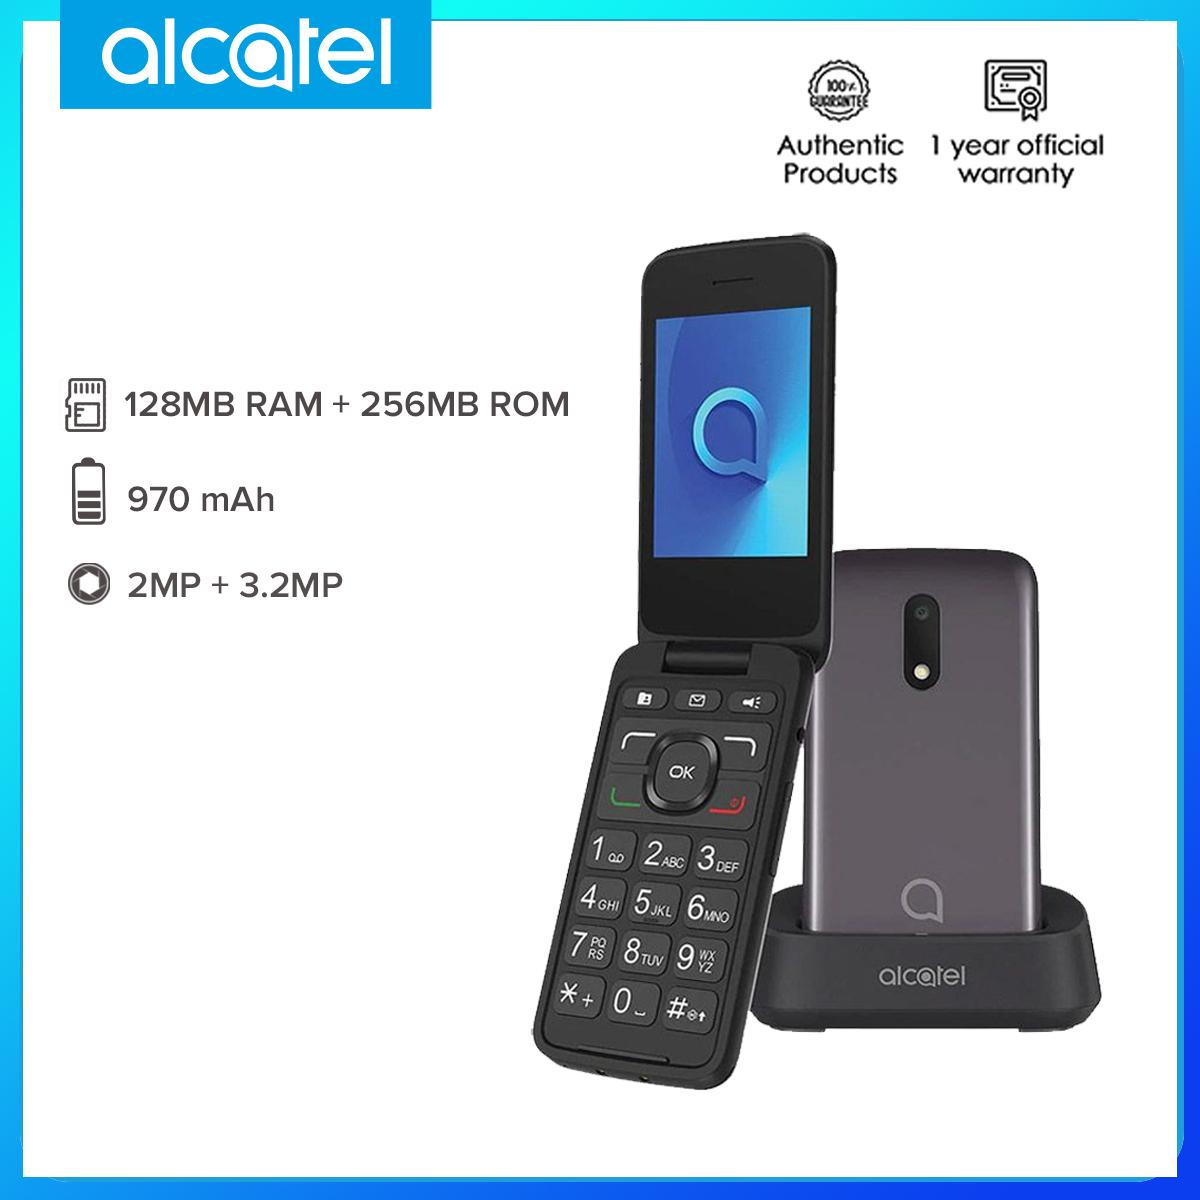 Buy Alcatel Top Products Online at Best Price | lazada com ph